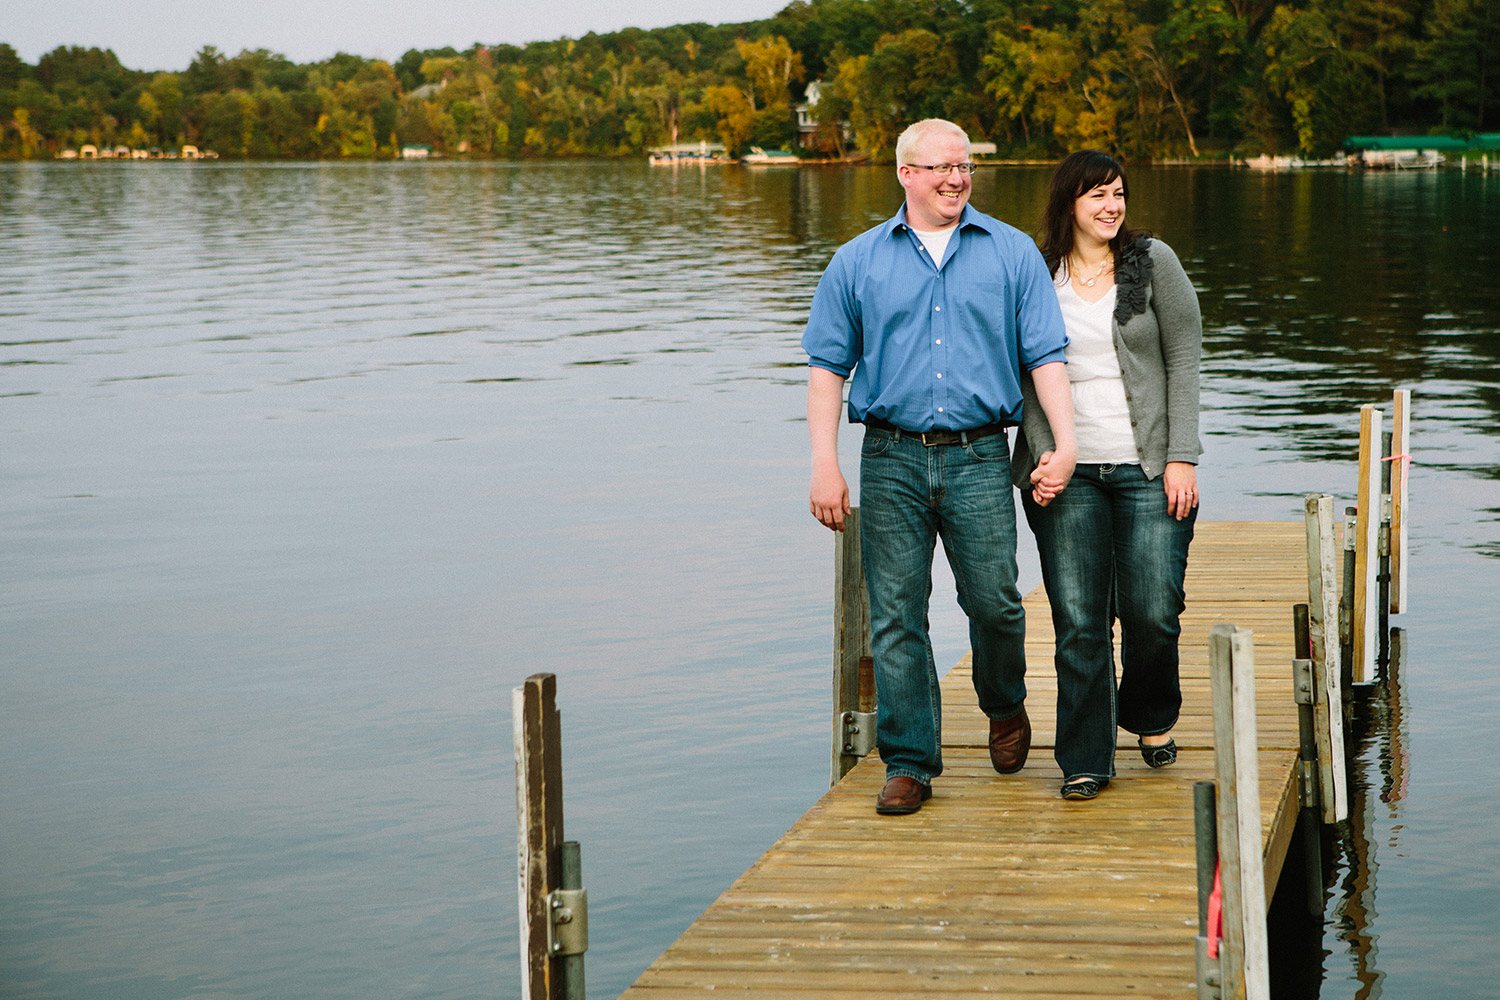 minnesota fall colors engagement session on a lake